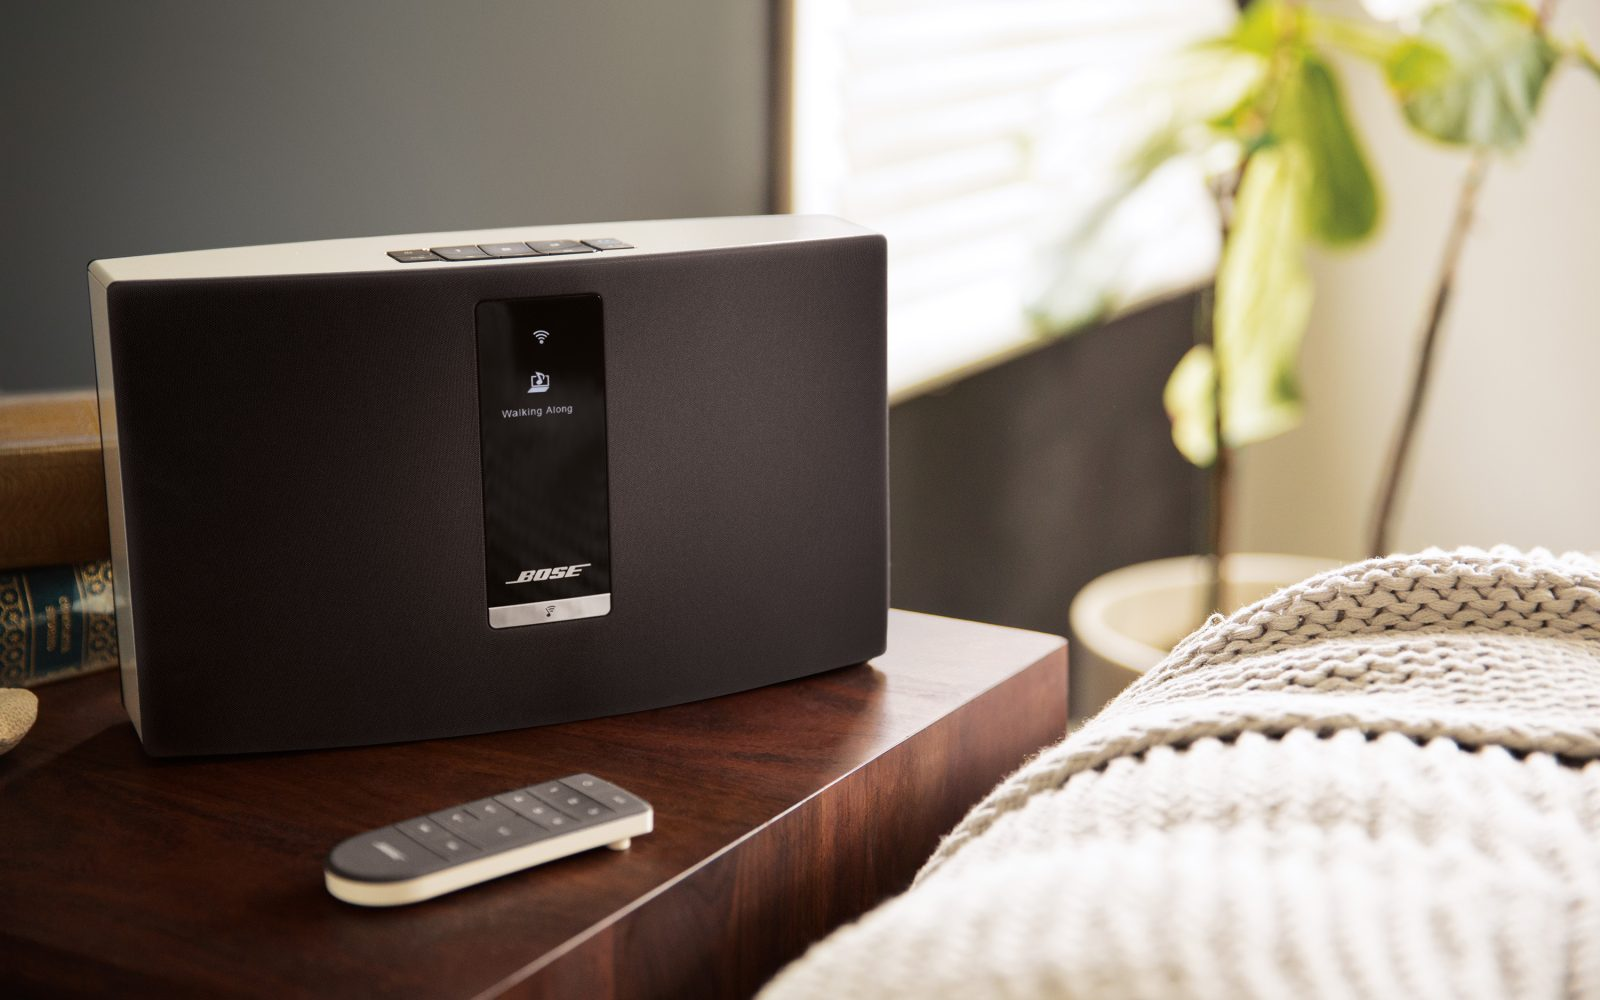 Bose expands SoundTouch WiFi music line with 10 new speaker